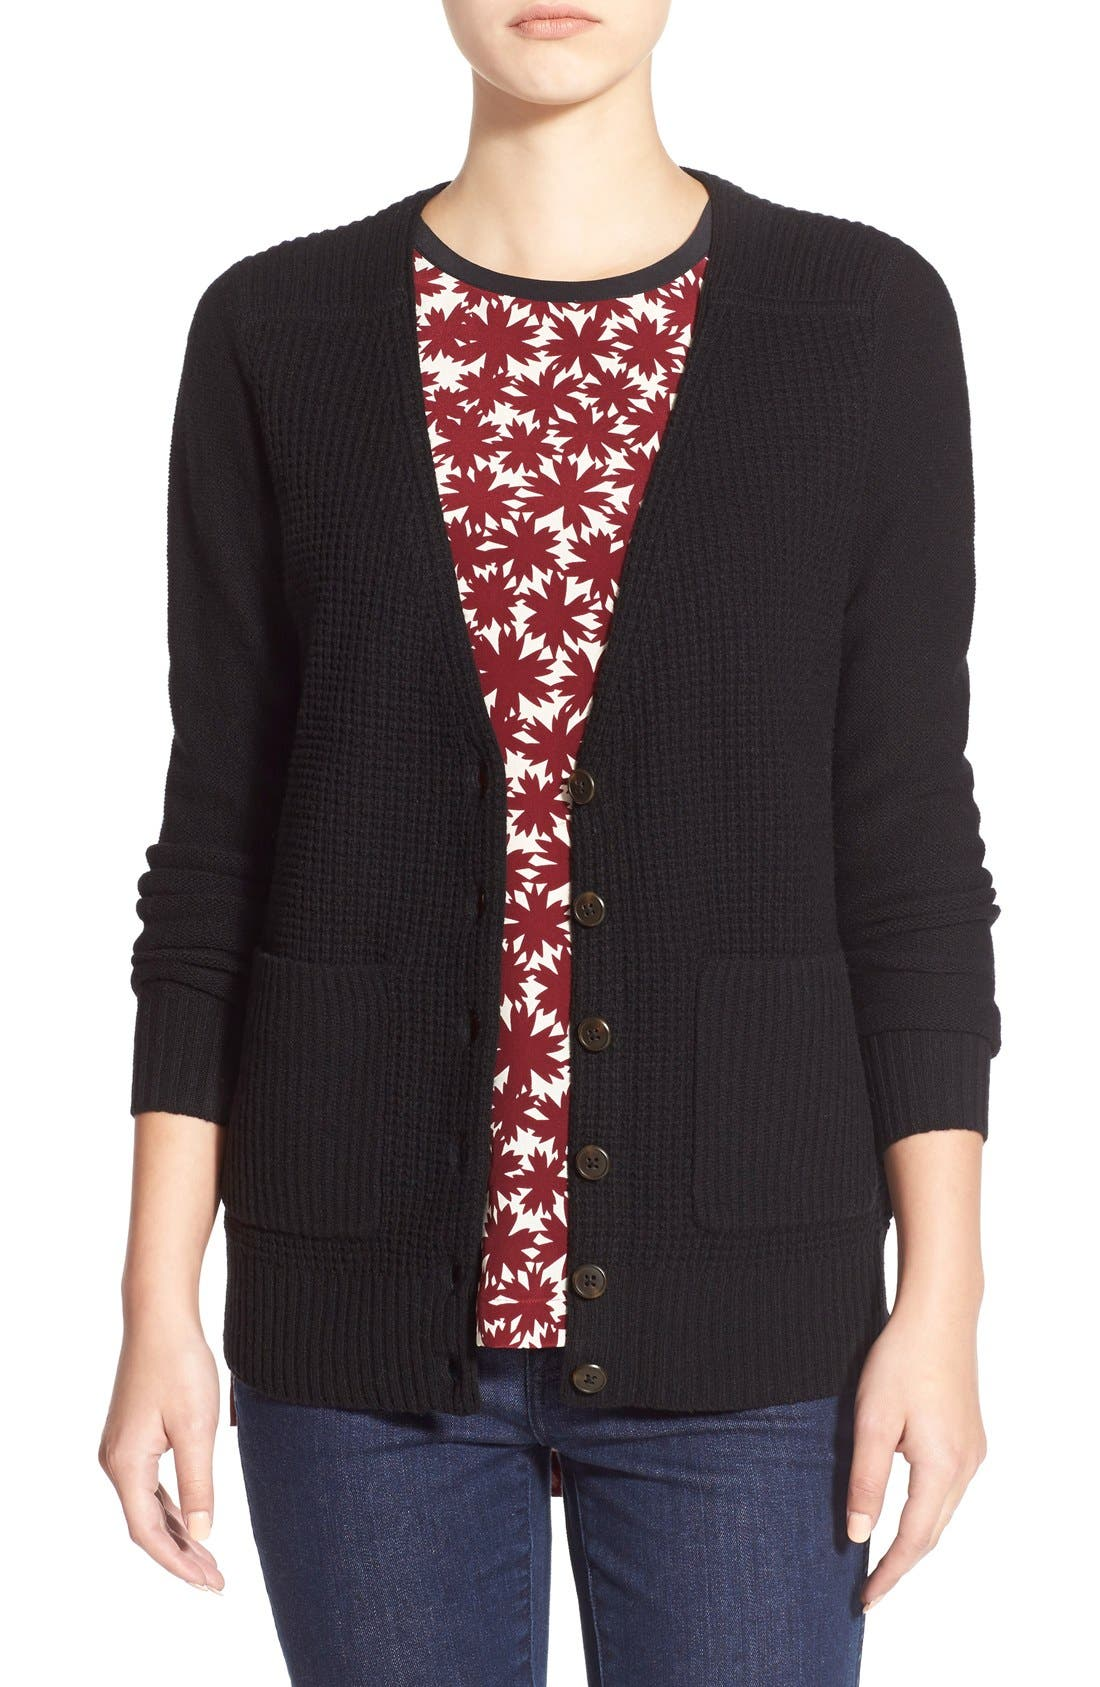 MADEWELL 'University' Cardigan, Main, color, 001